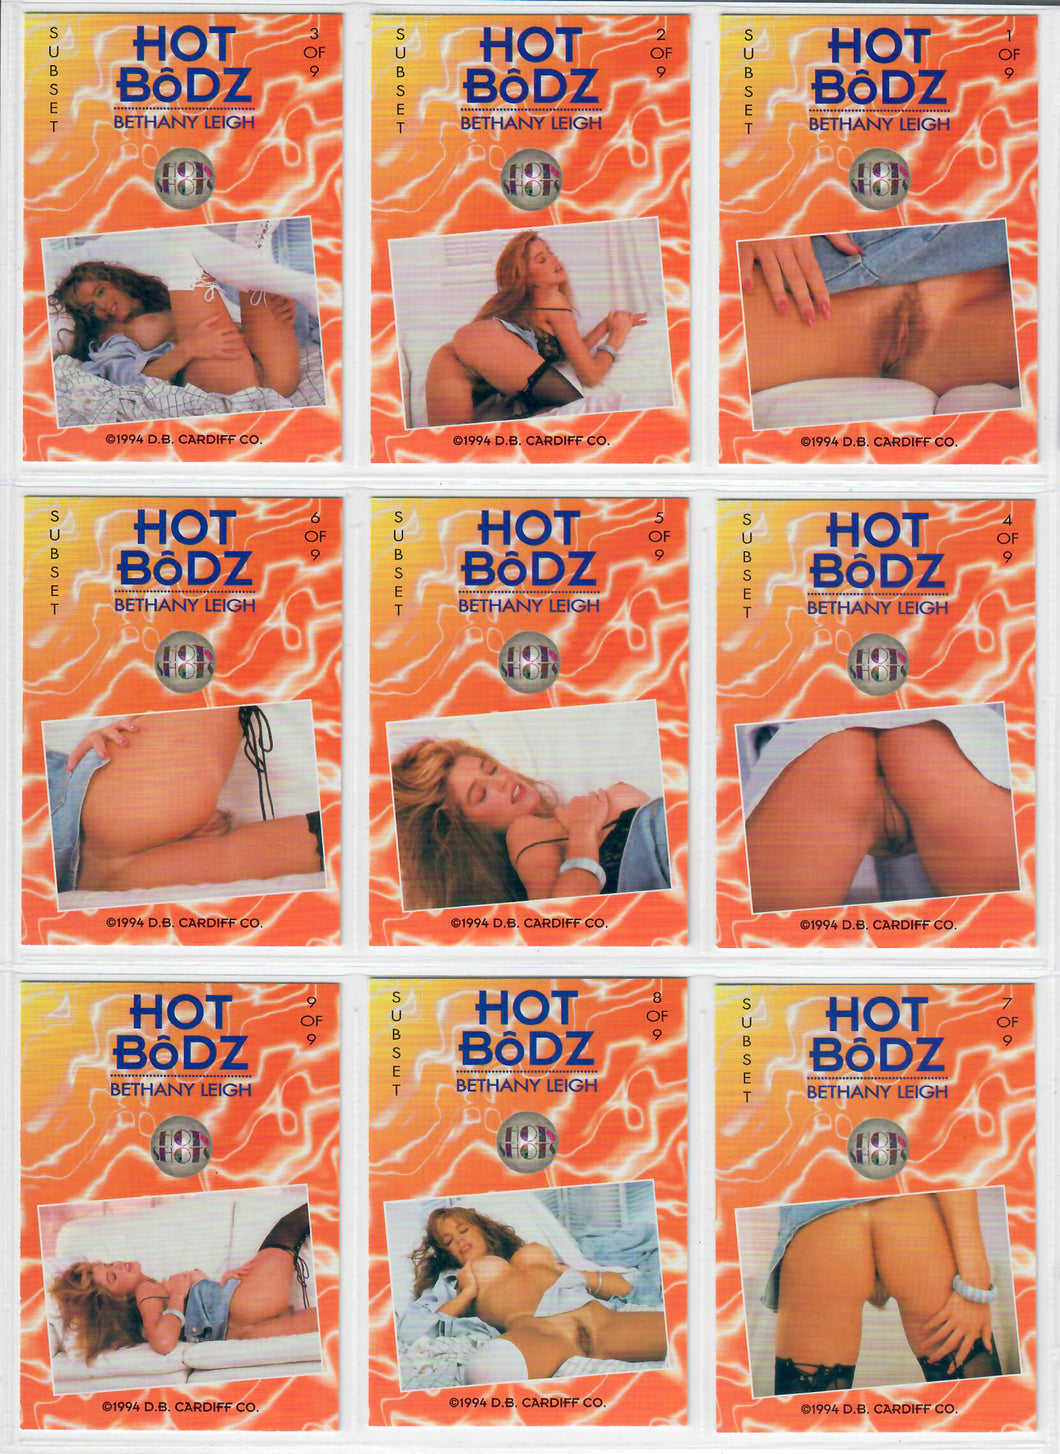 Hot Shots - HOT BODZ - 9 Card Subset - Bethany Leigh